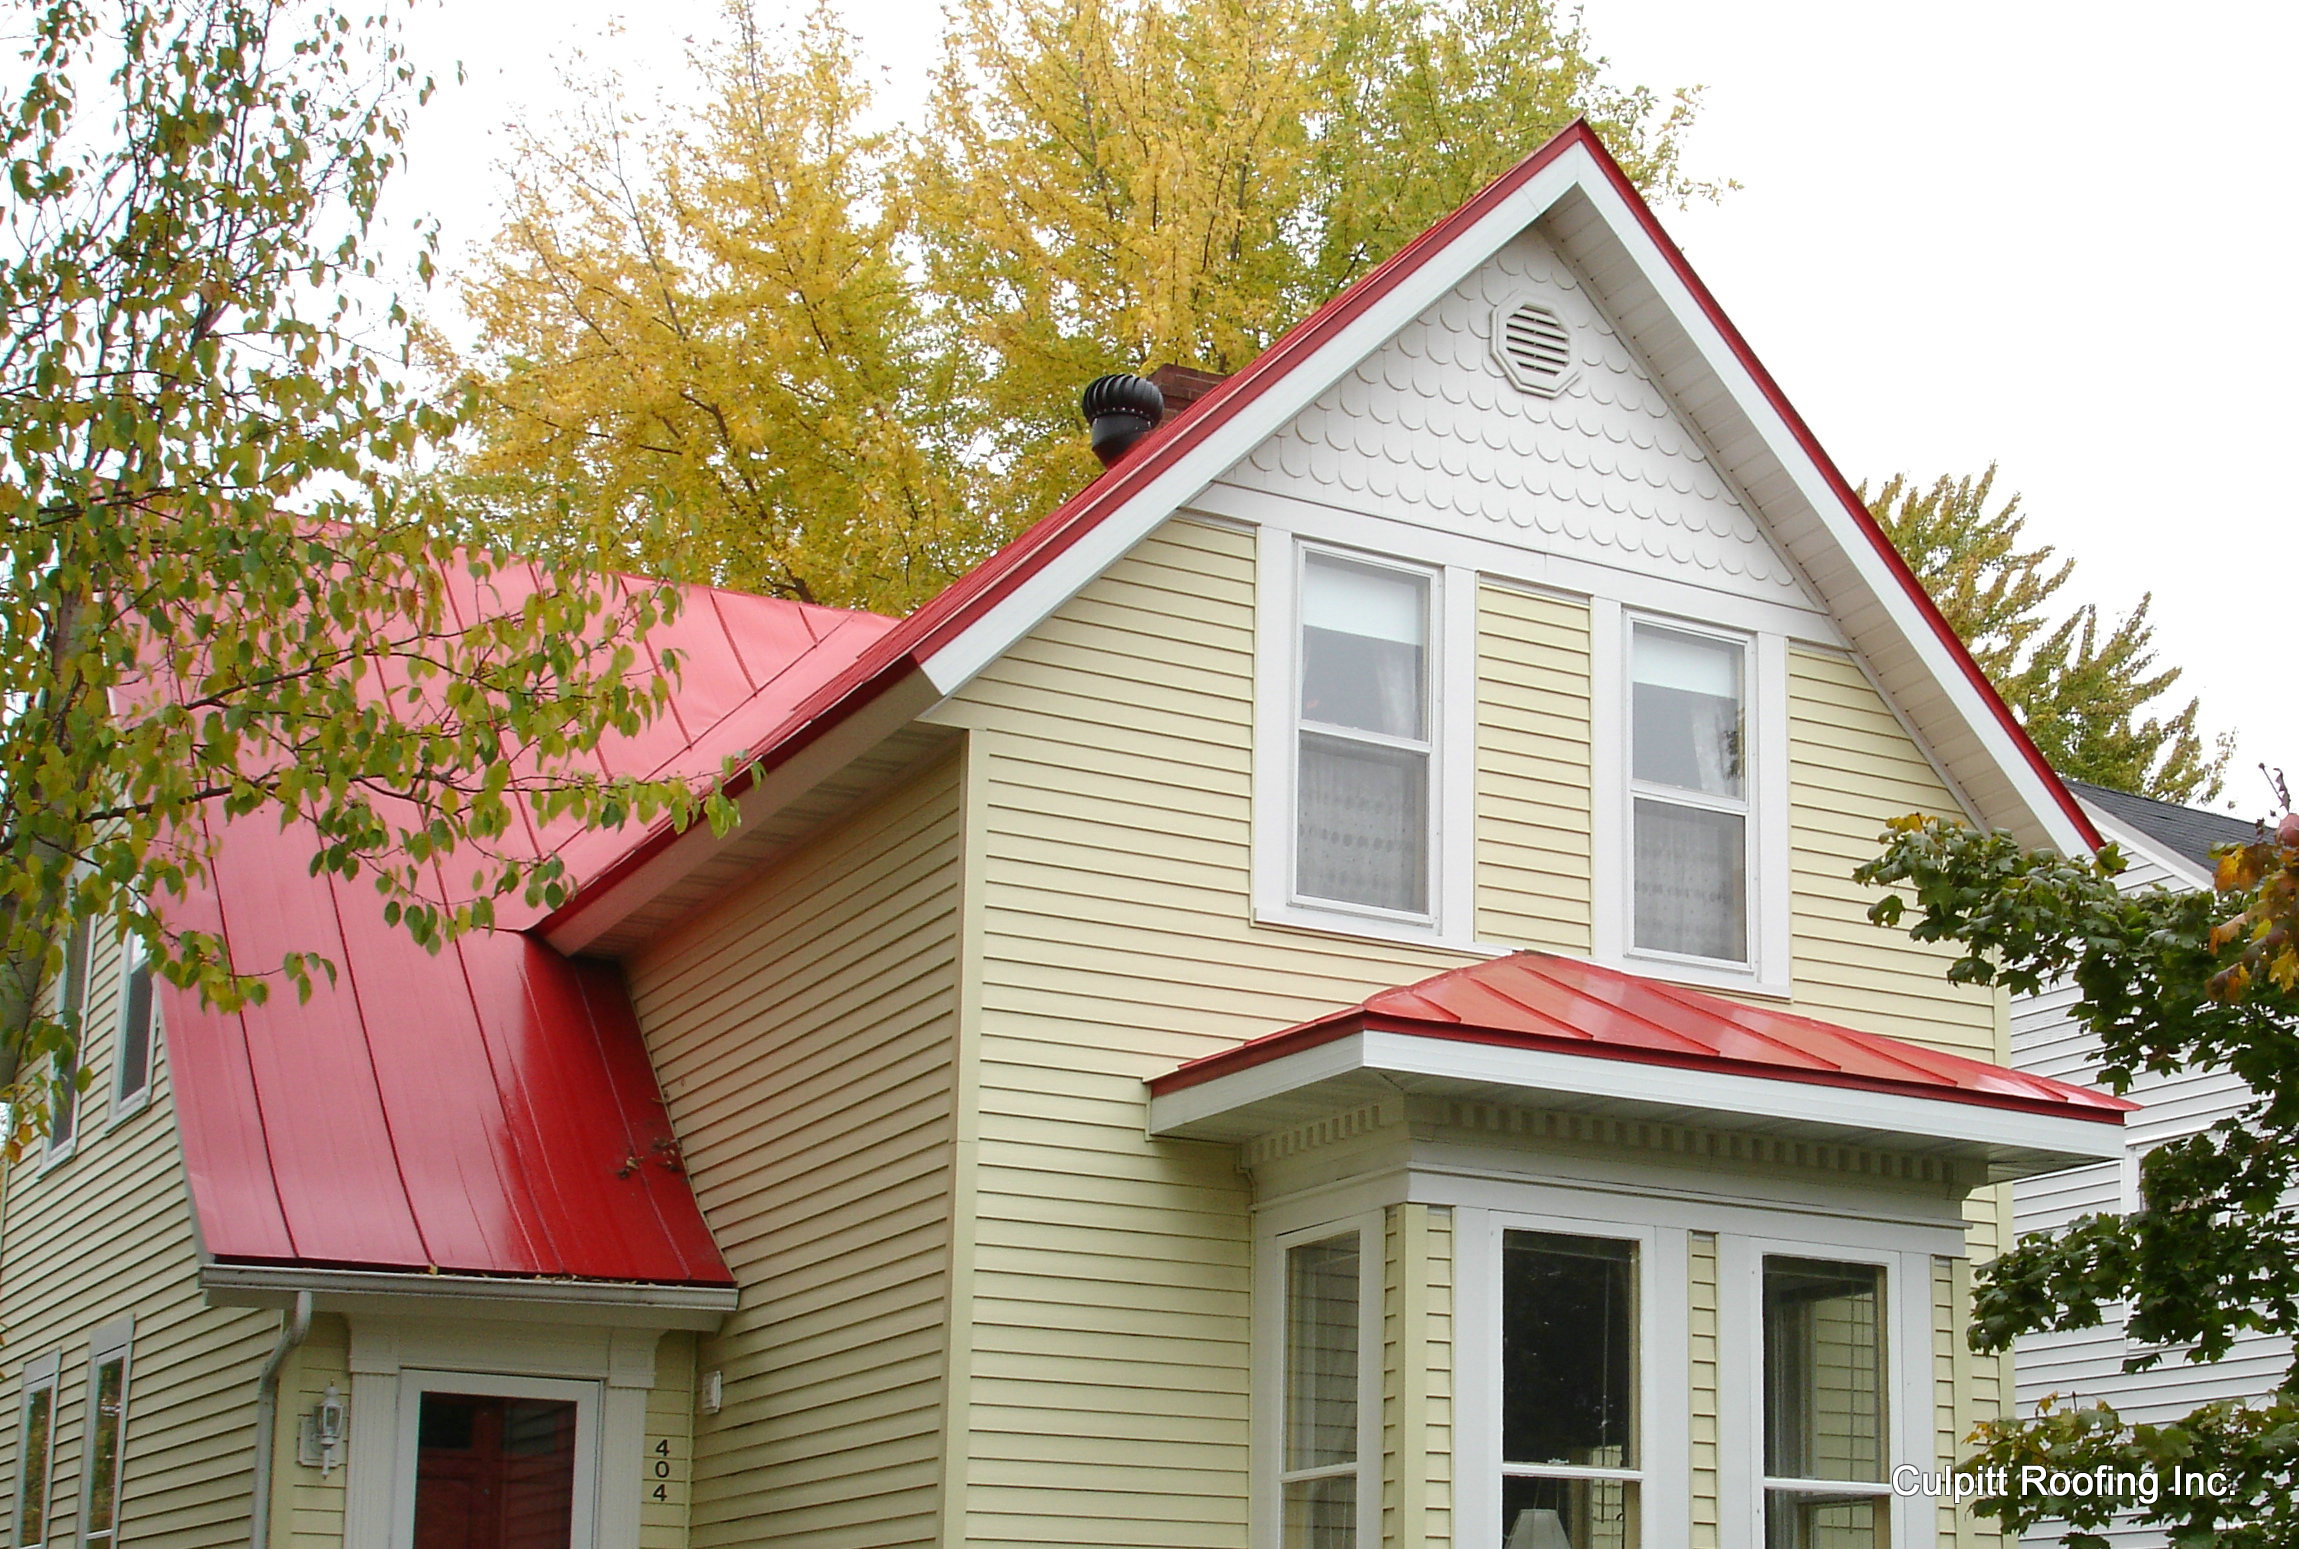 standing seam sheet metal roofing regal red house residential wisconsin minnesota iowa illinois north dakota